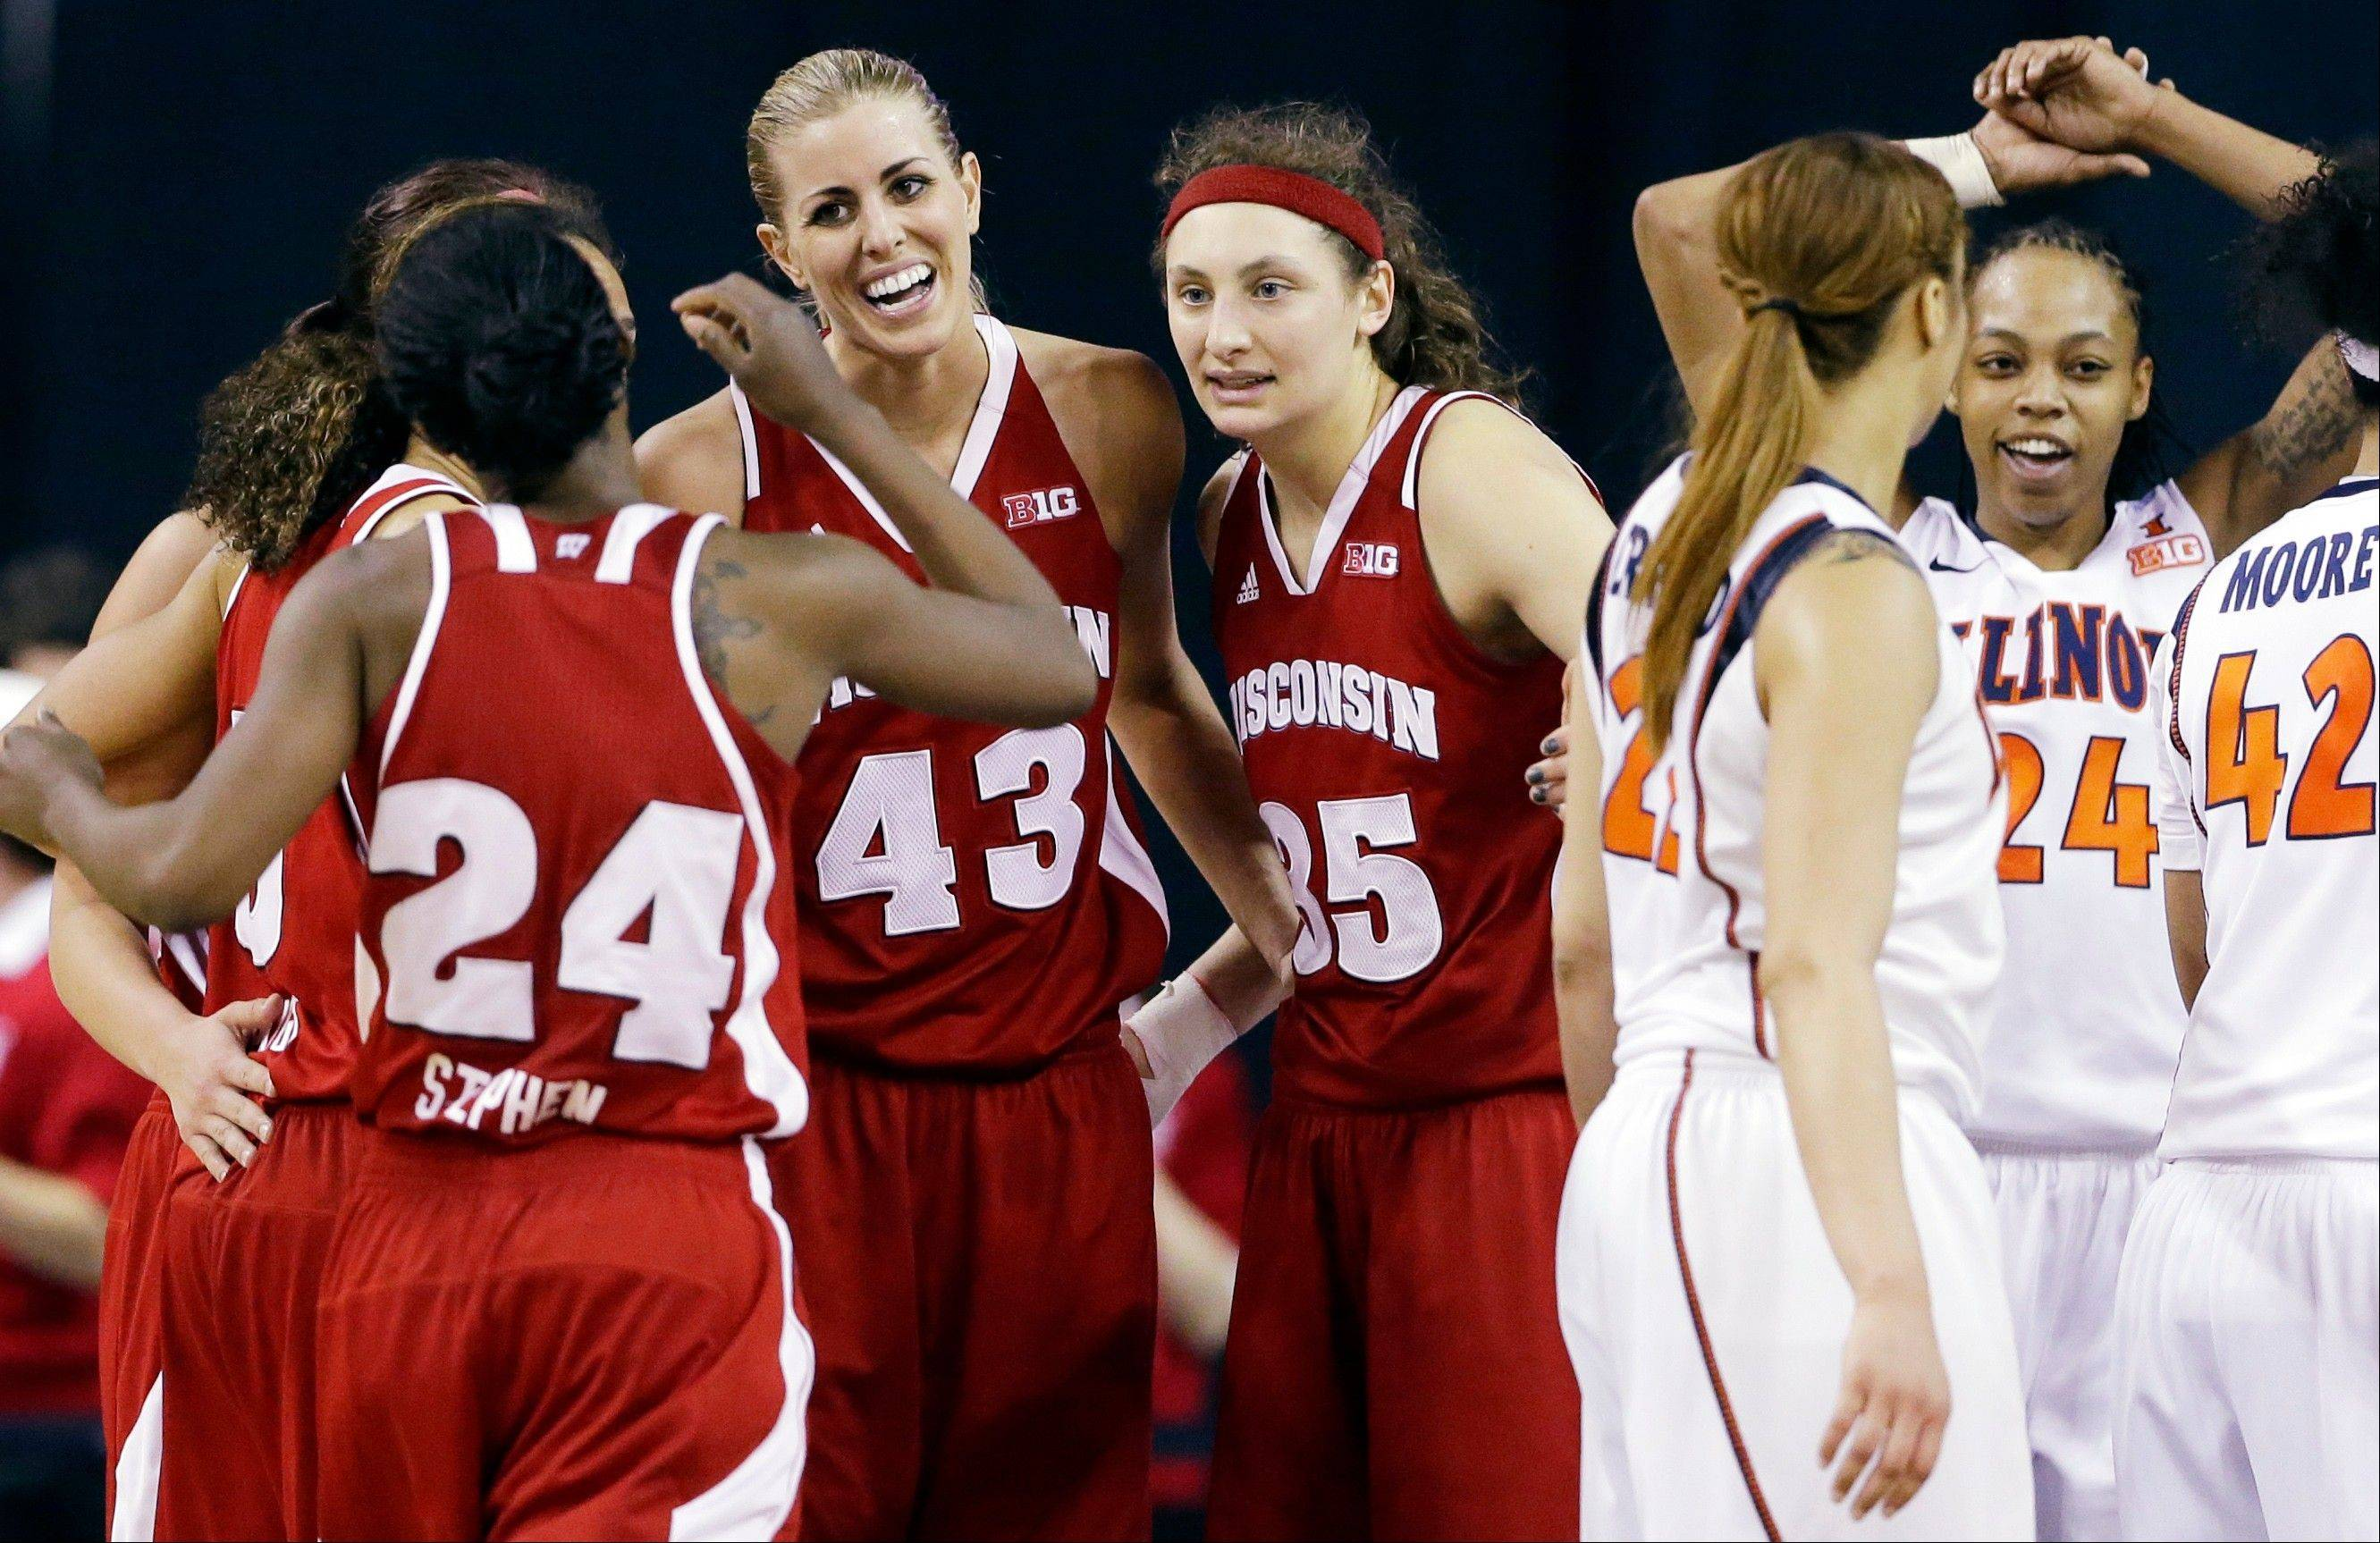 Wisconsin forward Cassie Rochel (43) smiles as she celebrates with guard Tiera Stephen (24) and forward and Bartlett grad Jacki Gulczynski (35) after Illinois guard Adrienne Godbold (24) was called for a foul during the second half of an NCAA college basketball game in the Big Ten Conference tournament in Hoffman Estates, Ill., Thursday, March 7, 2013. Wisconsin won 58-57.